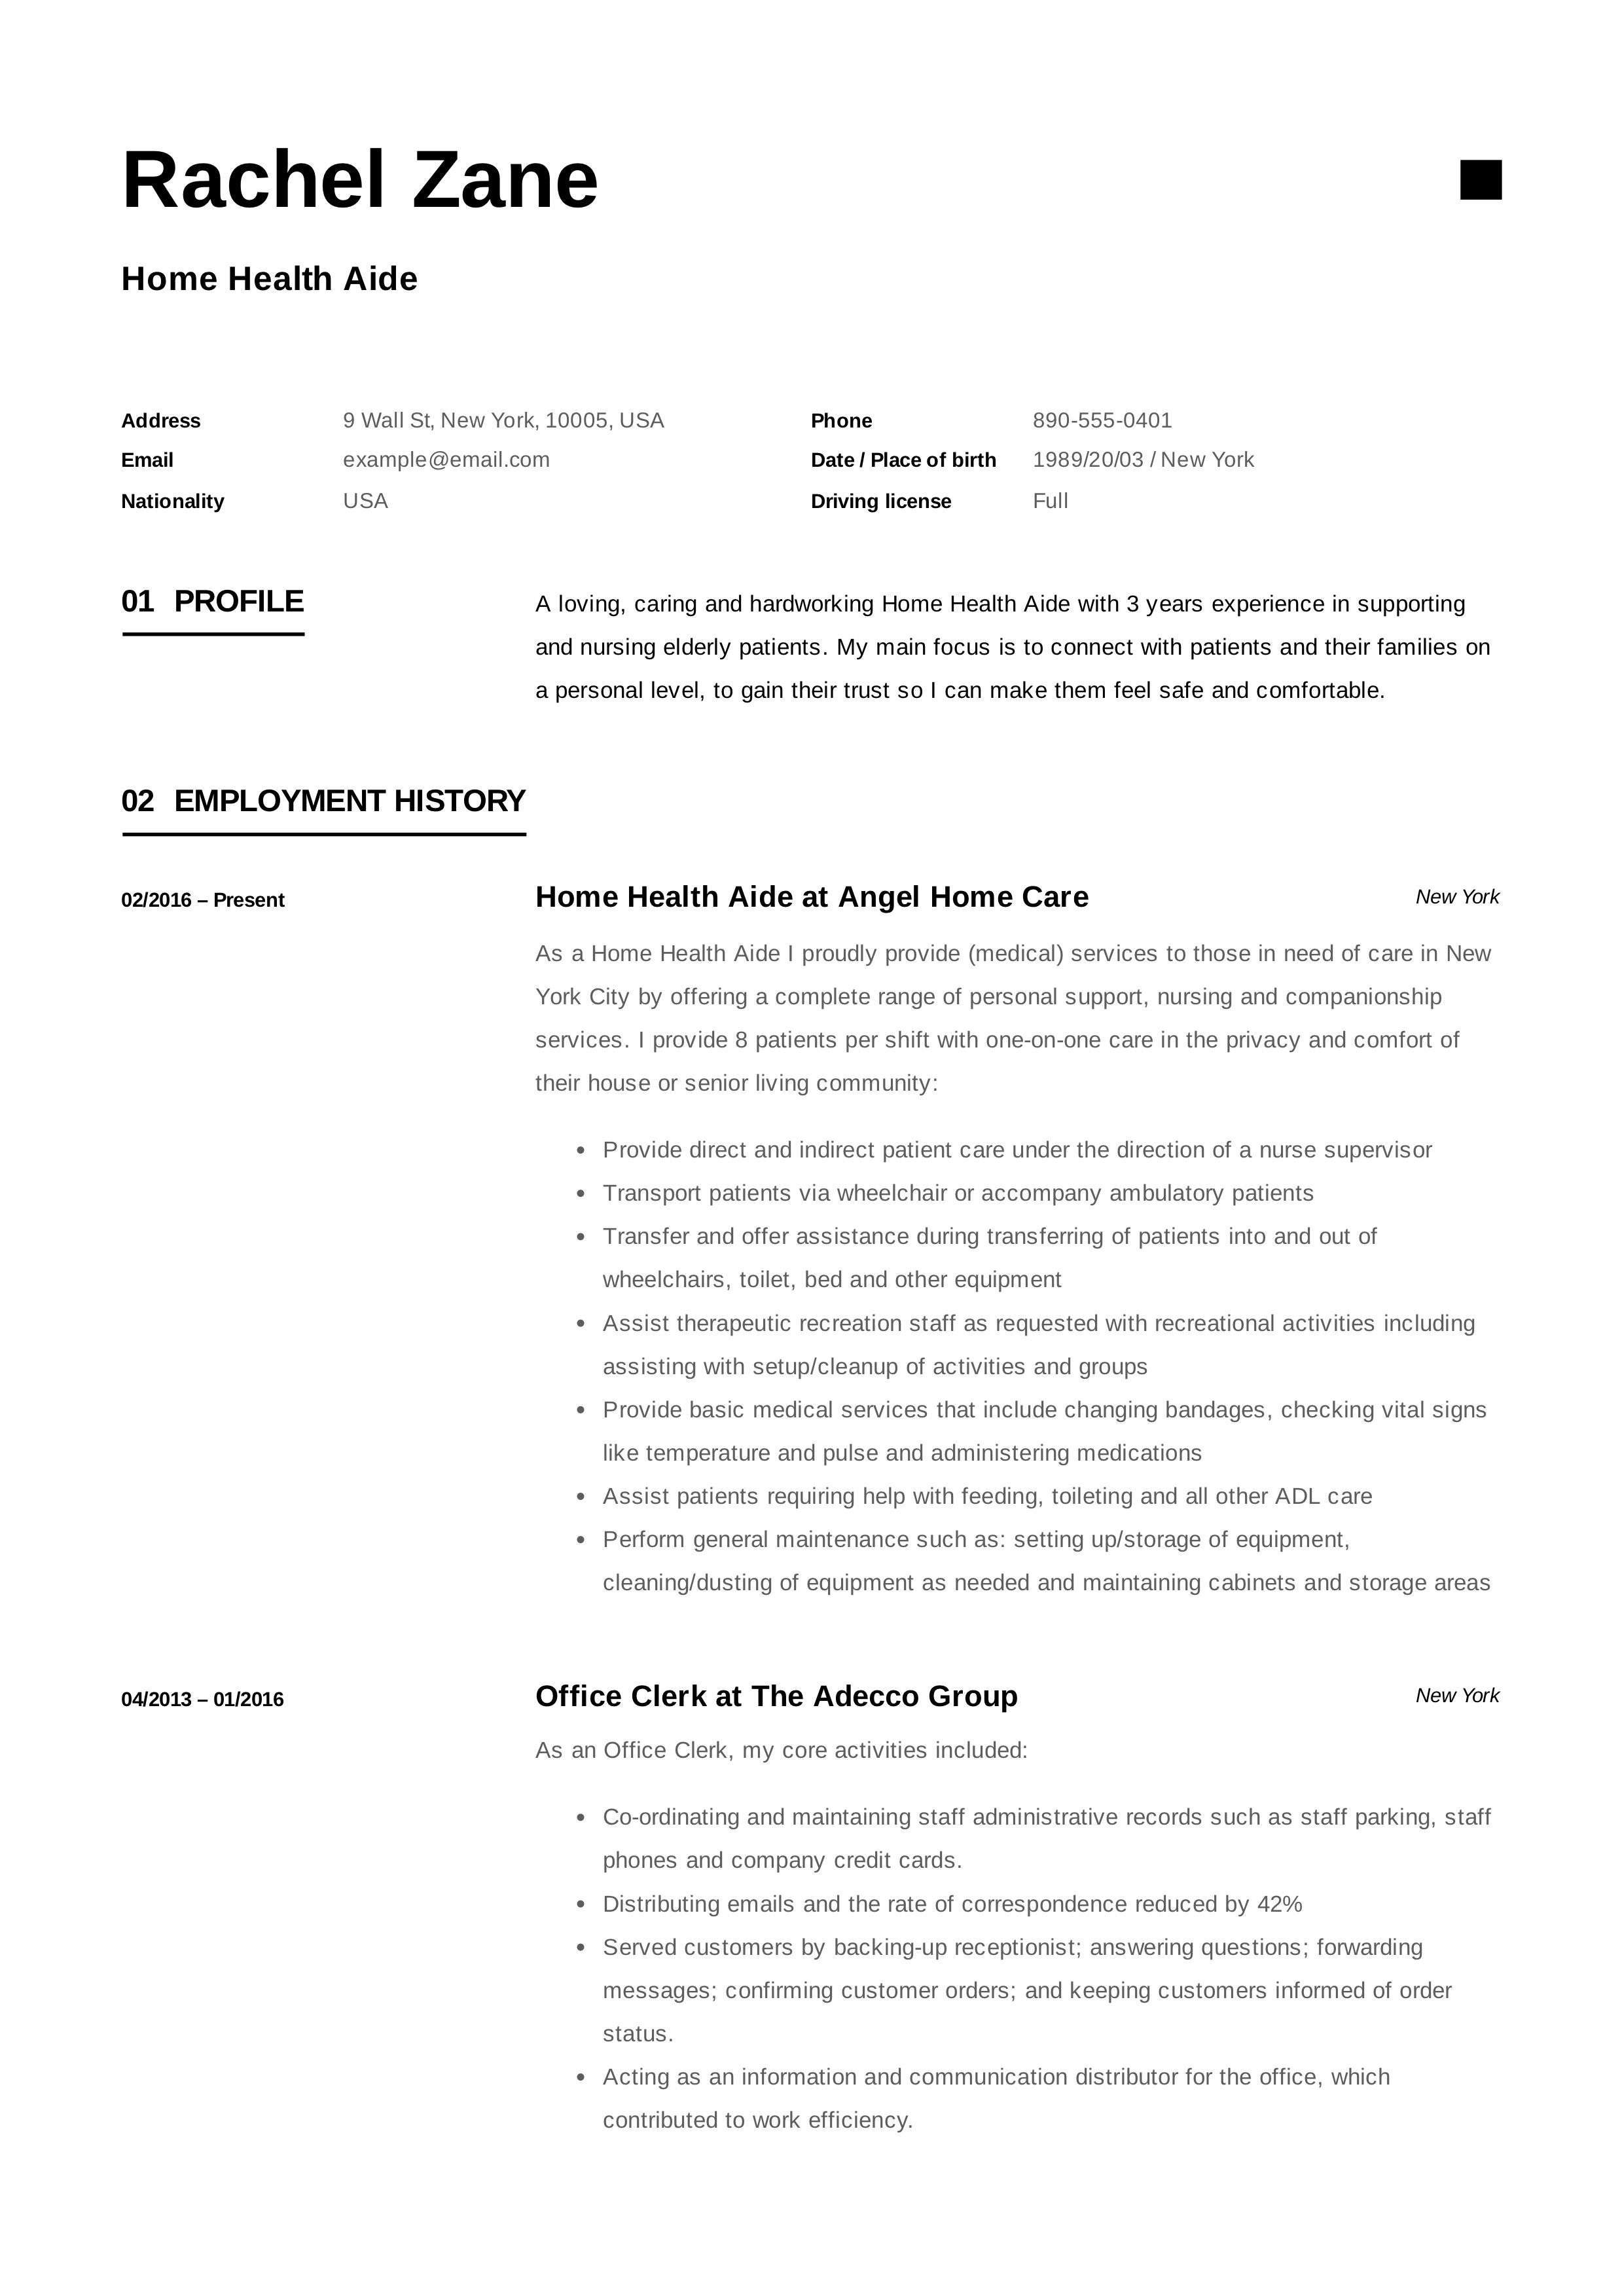 Home health aide resume template design tips examples